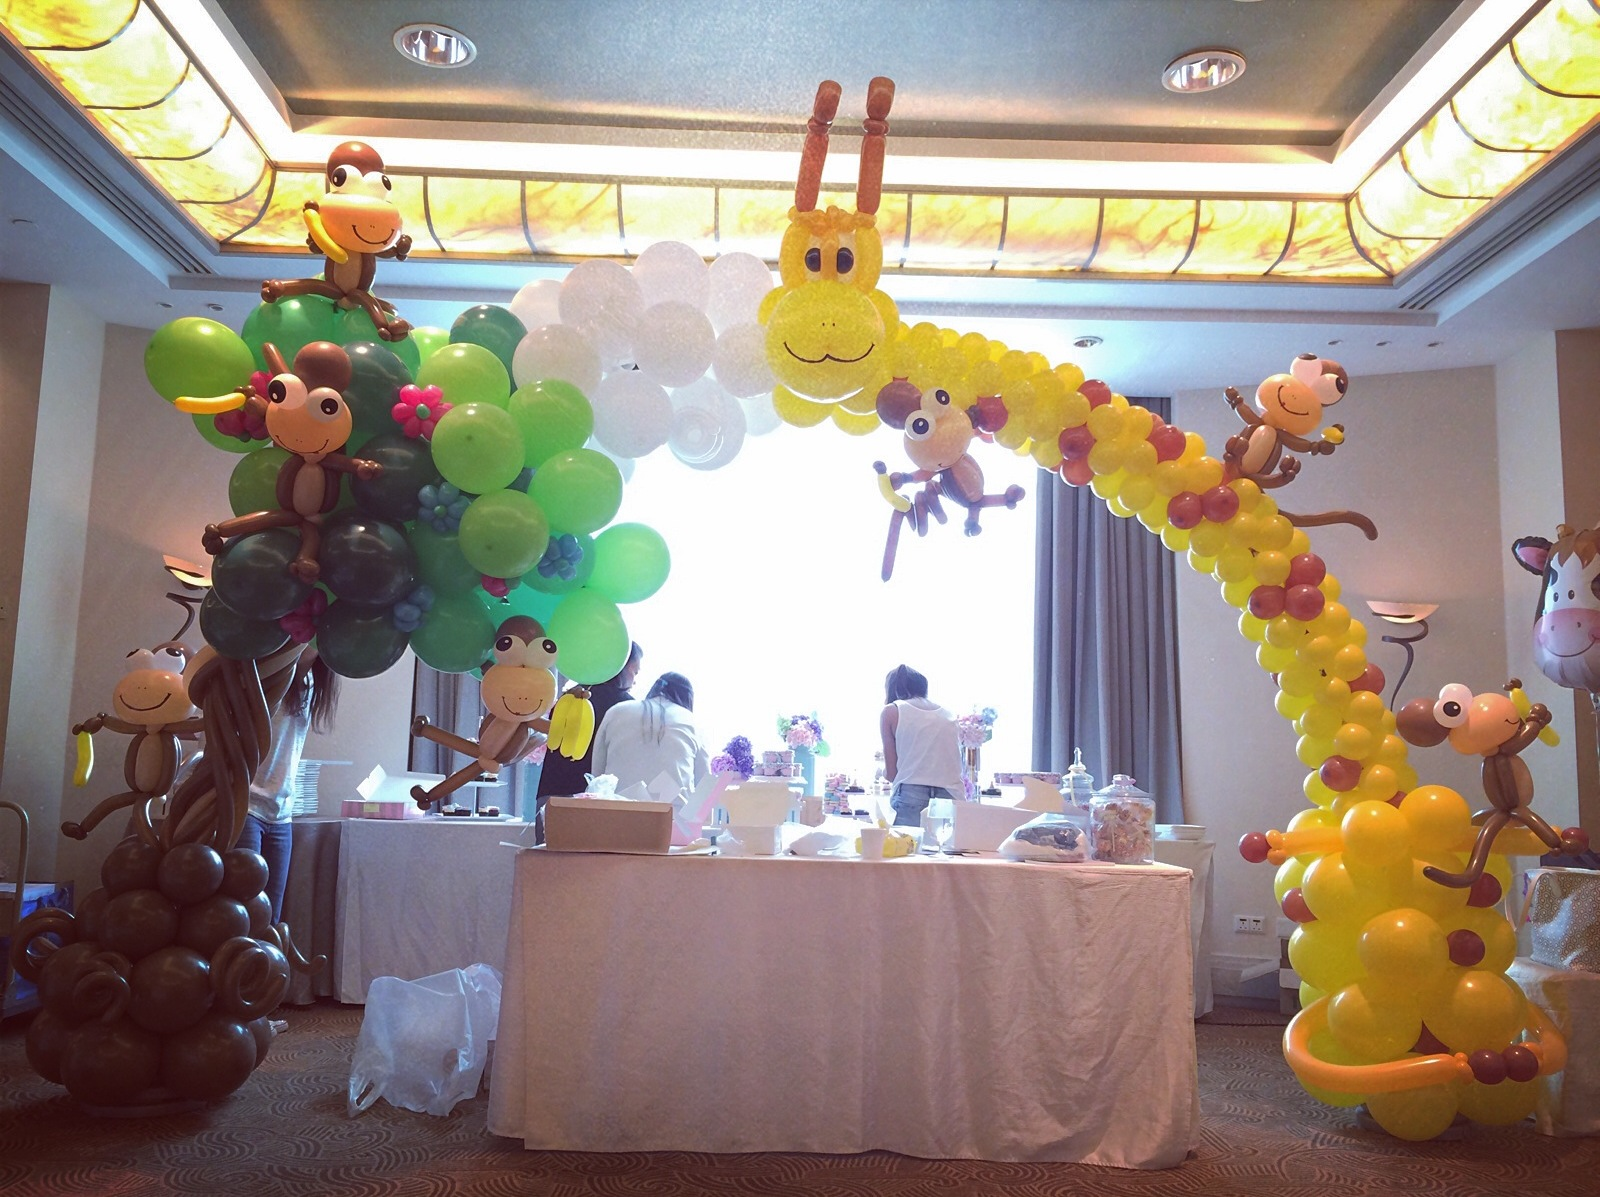 Professional Balloon Arch Singapore That Balloons